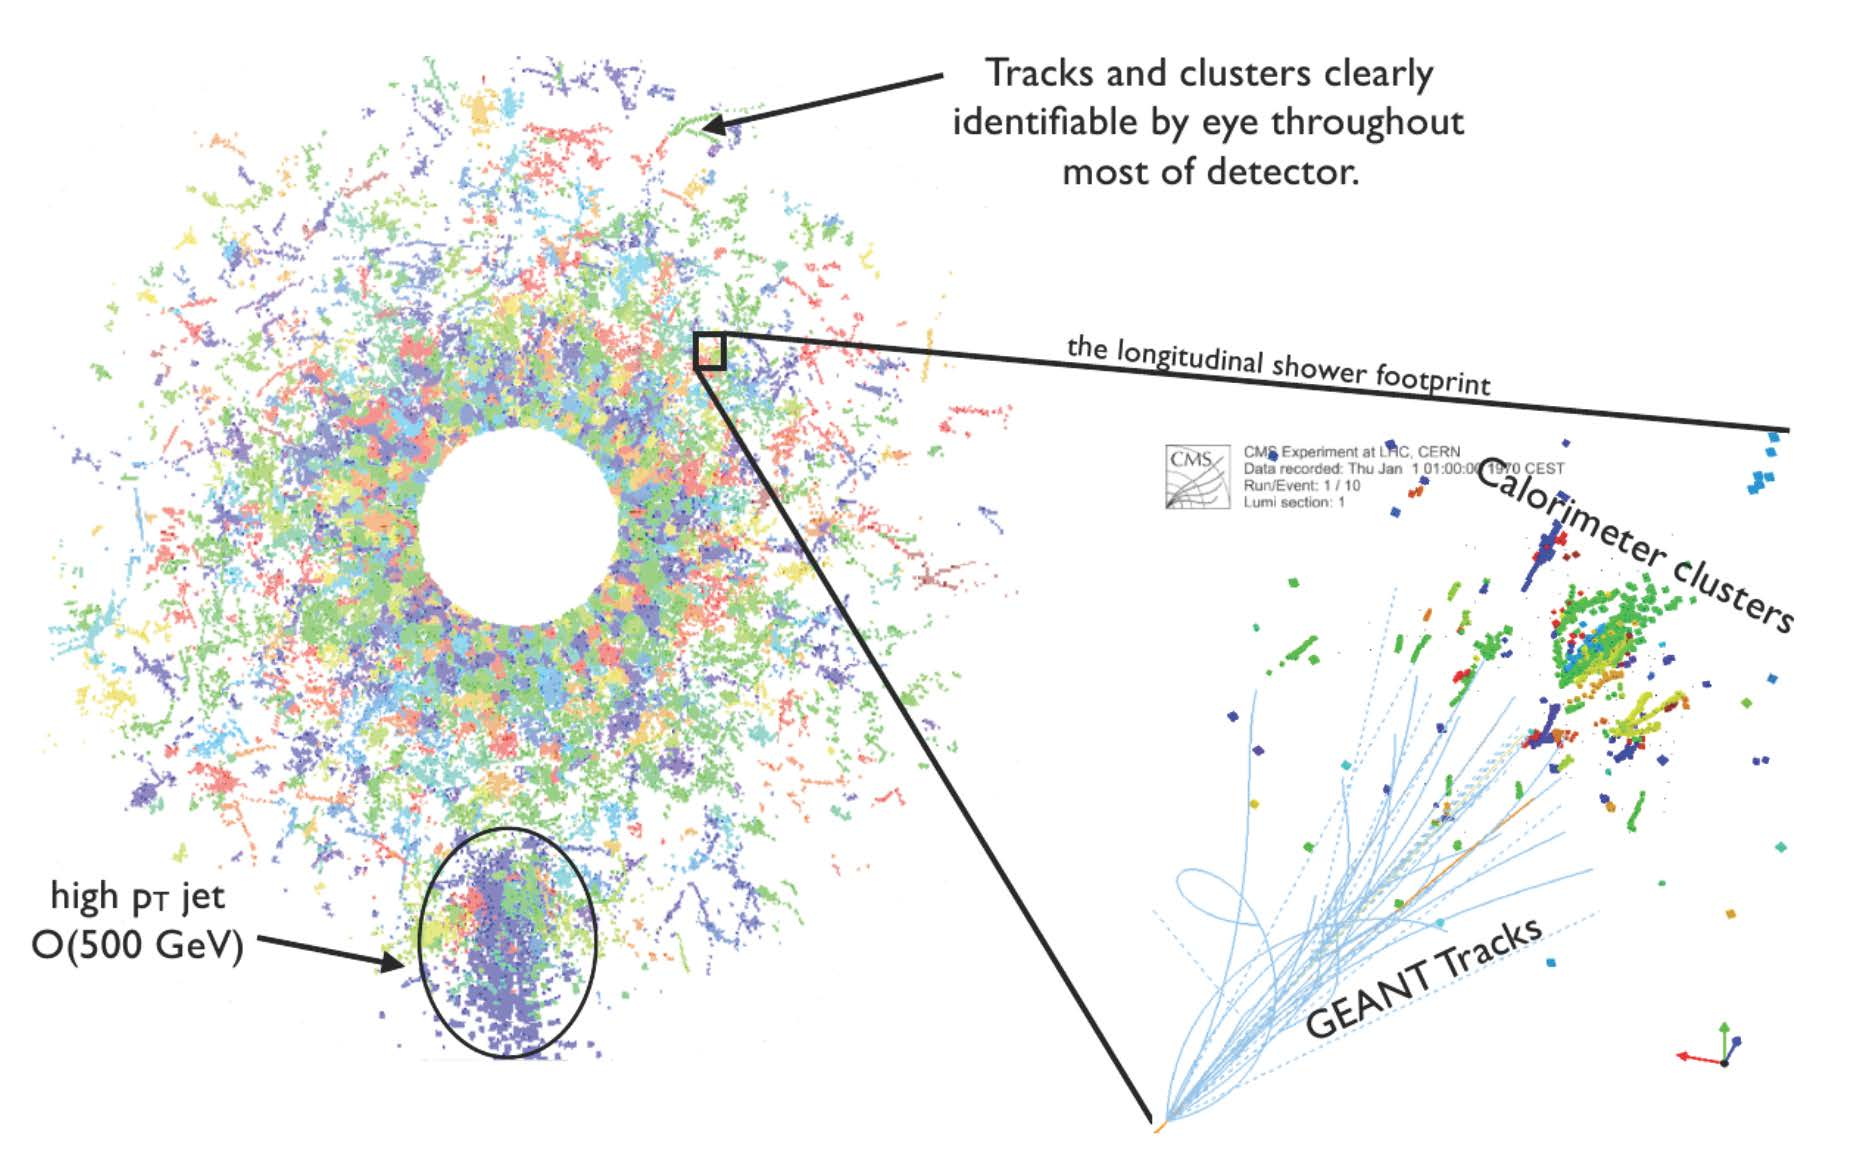 Figure shows that the workflow is similar in LHC.